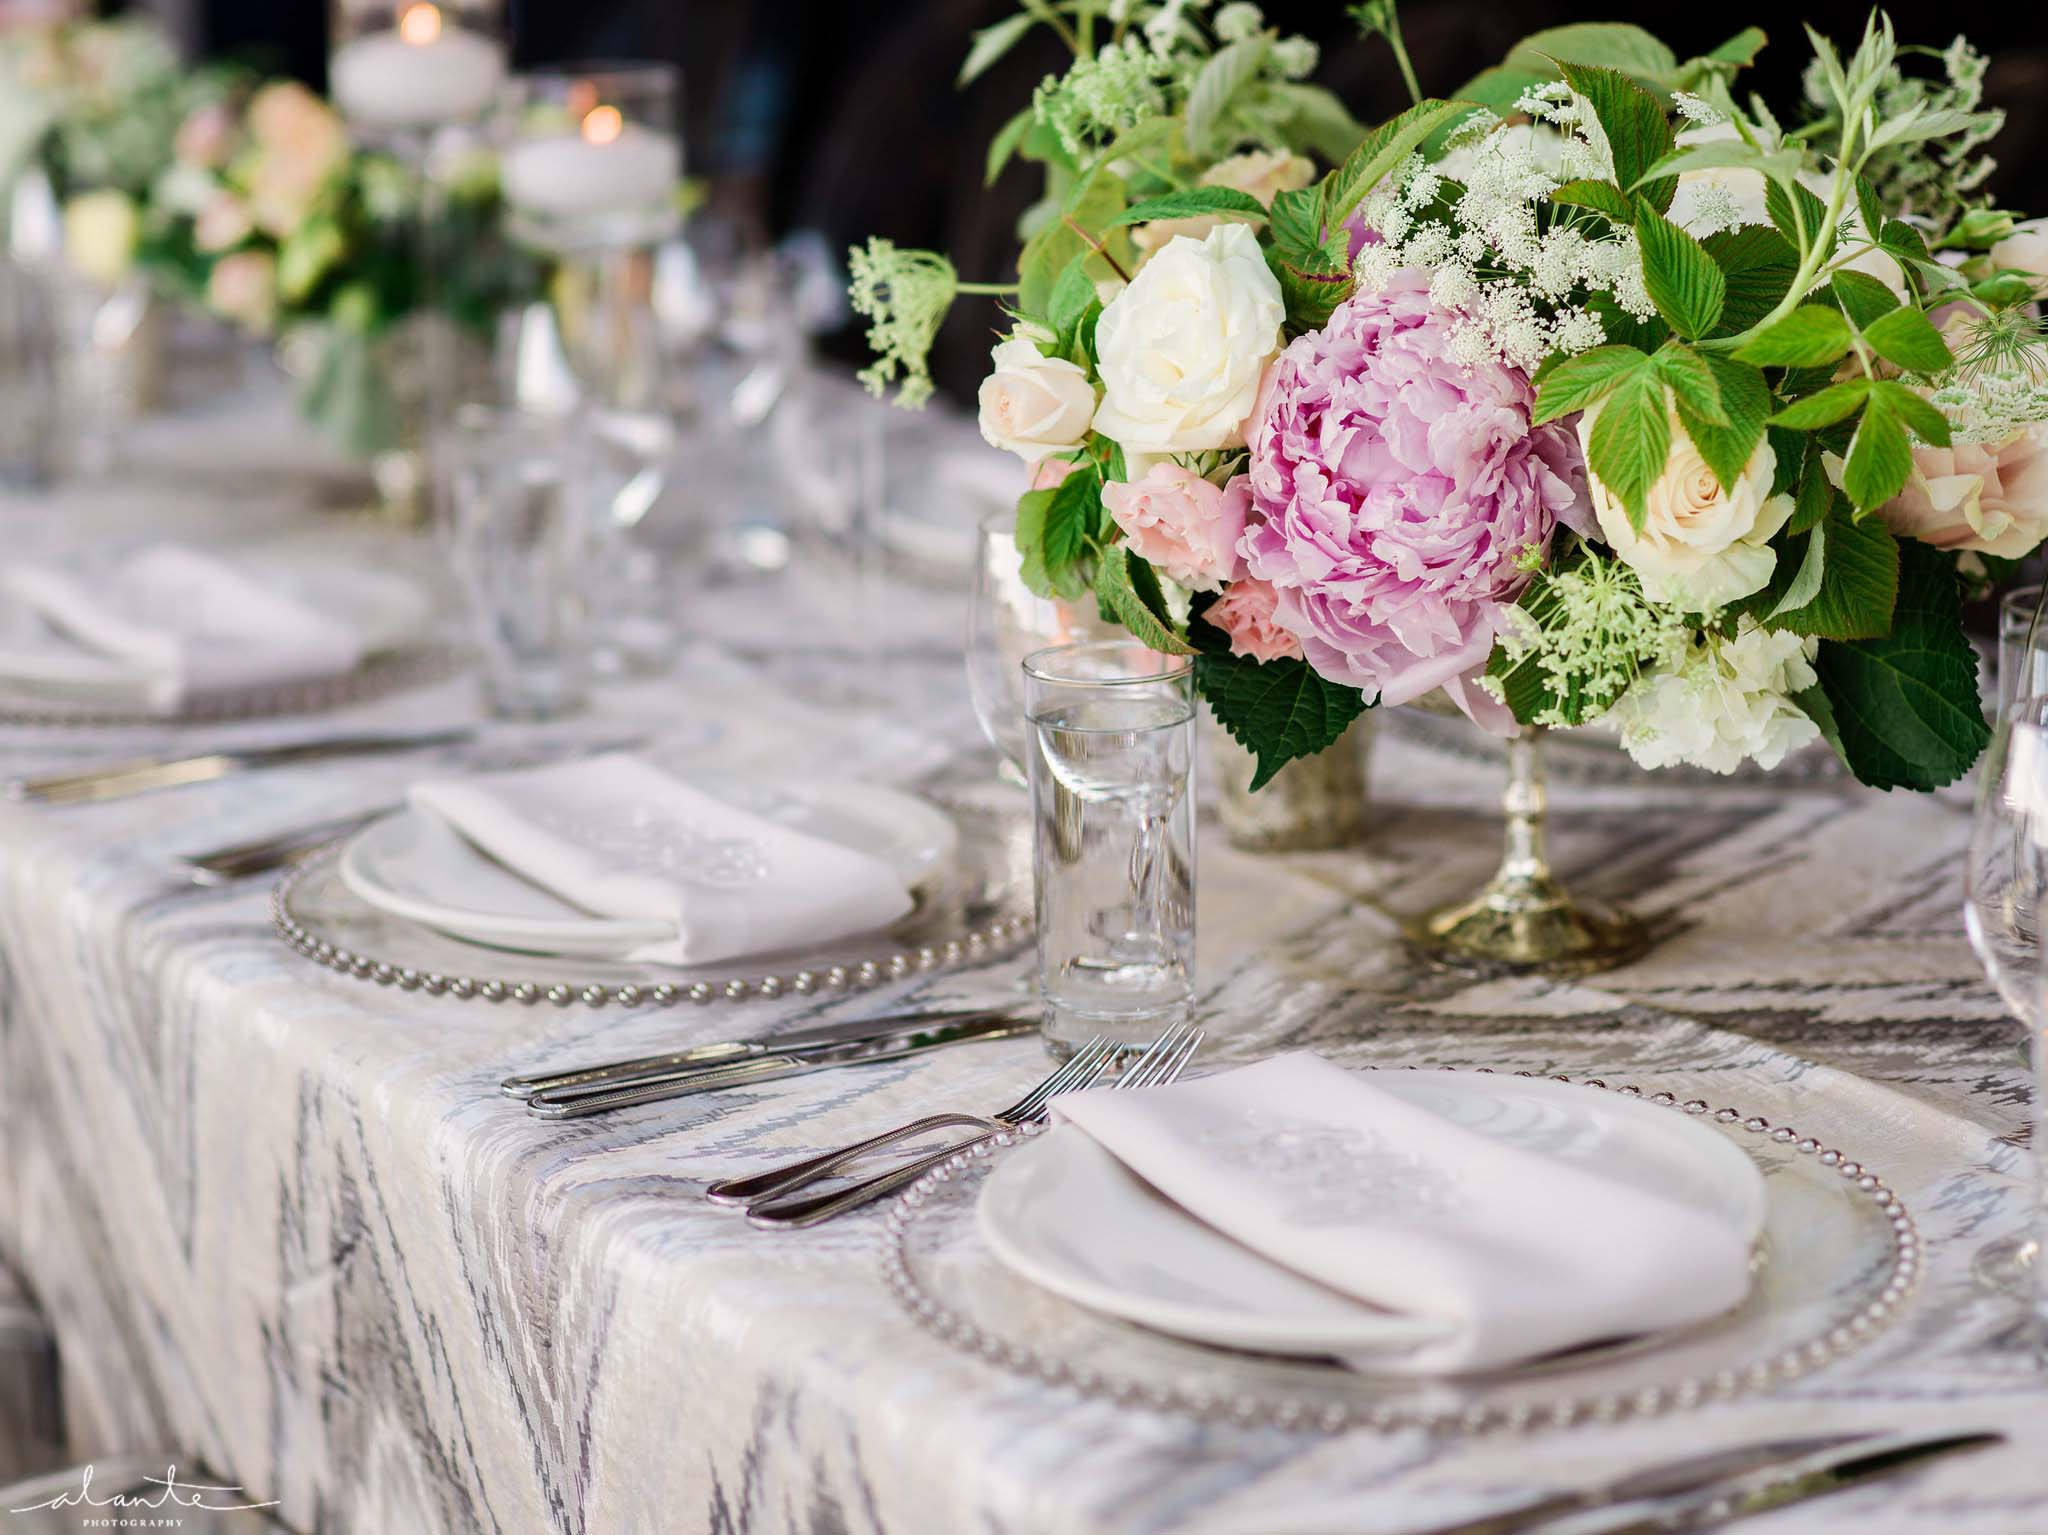 Pink peony centerpiece in silver compote, Olympic Rooftop Pavilion wedding with pink peonies by Flora Nova Design Seattle